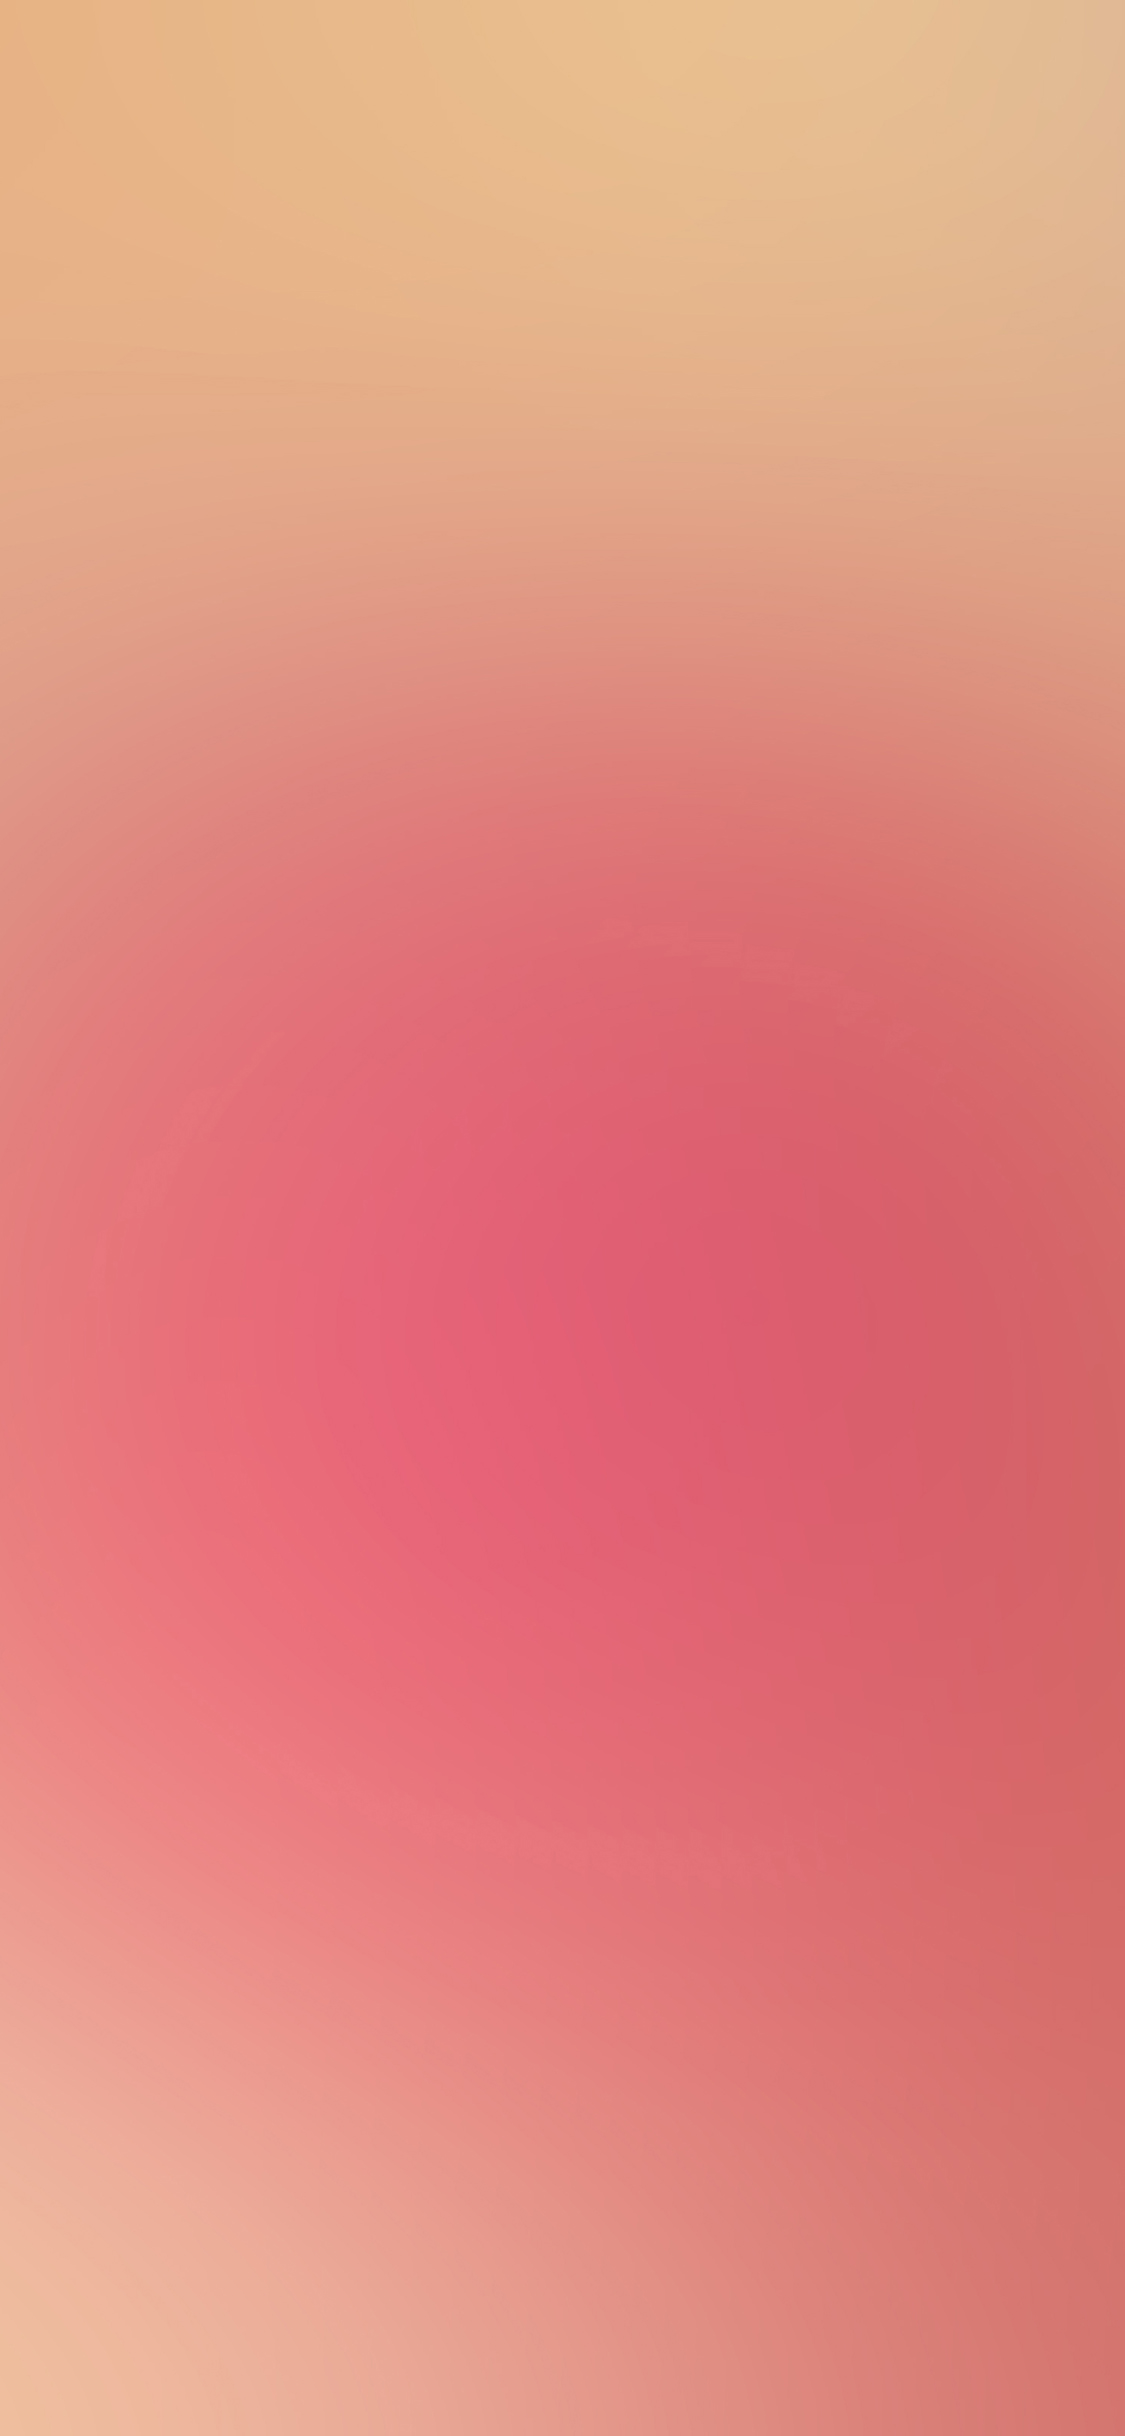 iPhoneXpapers.com-Apple-iPhone-wallpaper-sb68-wallpaper-pink-love-blur